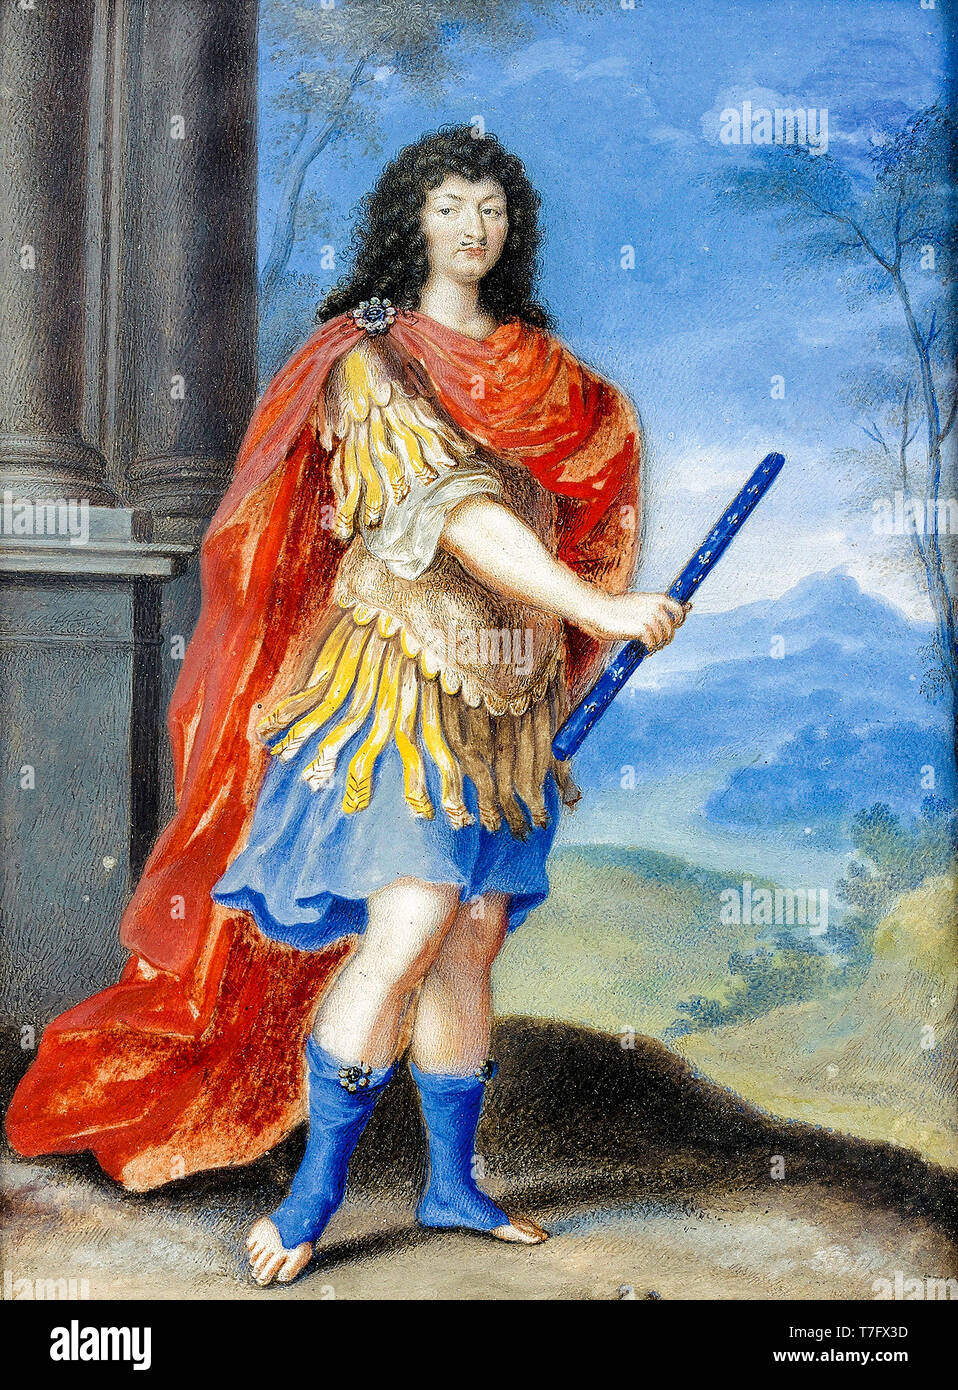 Portrait of Louis XIV dressed as Alexander the Great, unknown artist, 17th Century - Stock Image